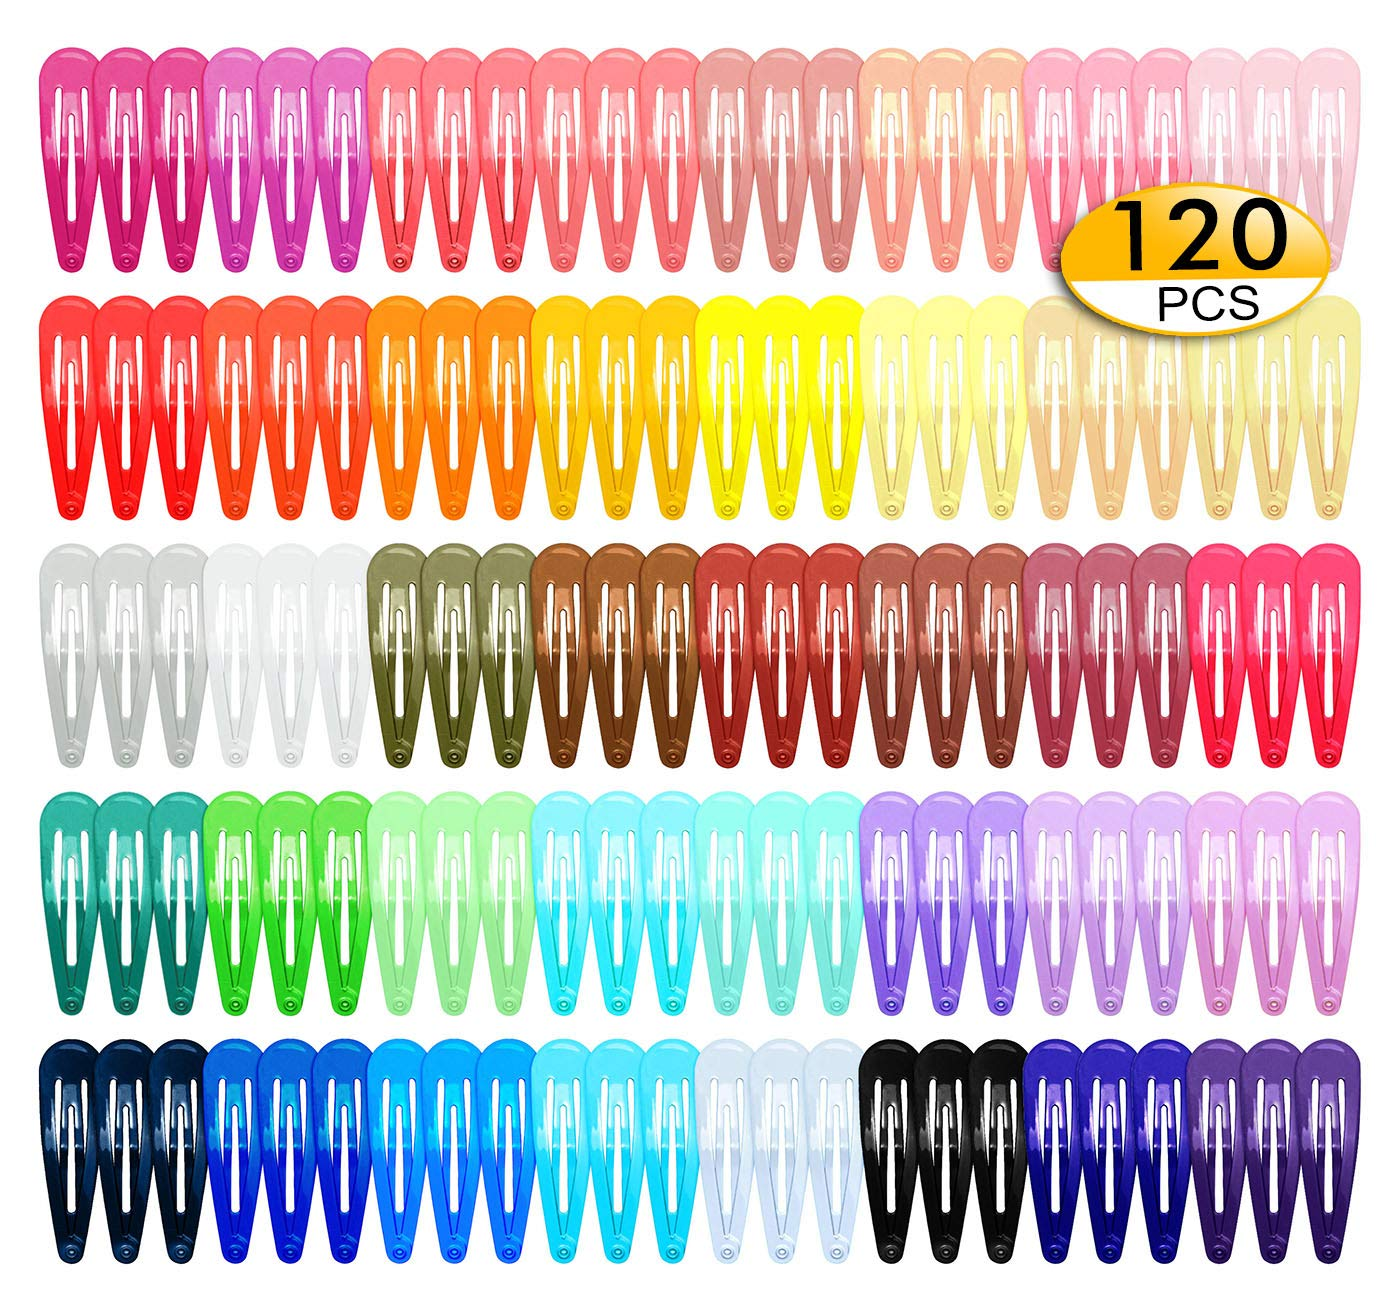 120Pcs Snap Hair Clips, 2 Inch Metal Barrettes in 40 Assorted Color, No Slip Cute Solid Candy Color Hair Accessories for Girls, Women, Kids Teens or Toddlers : Beauty